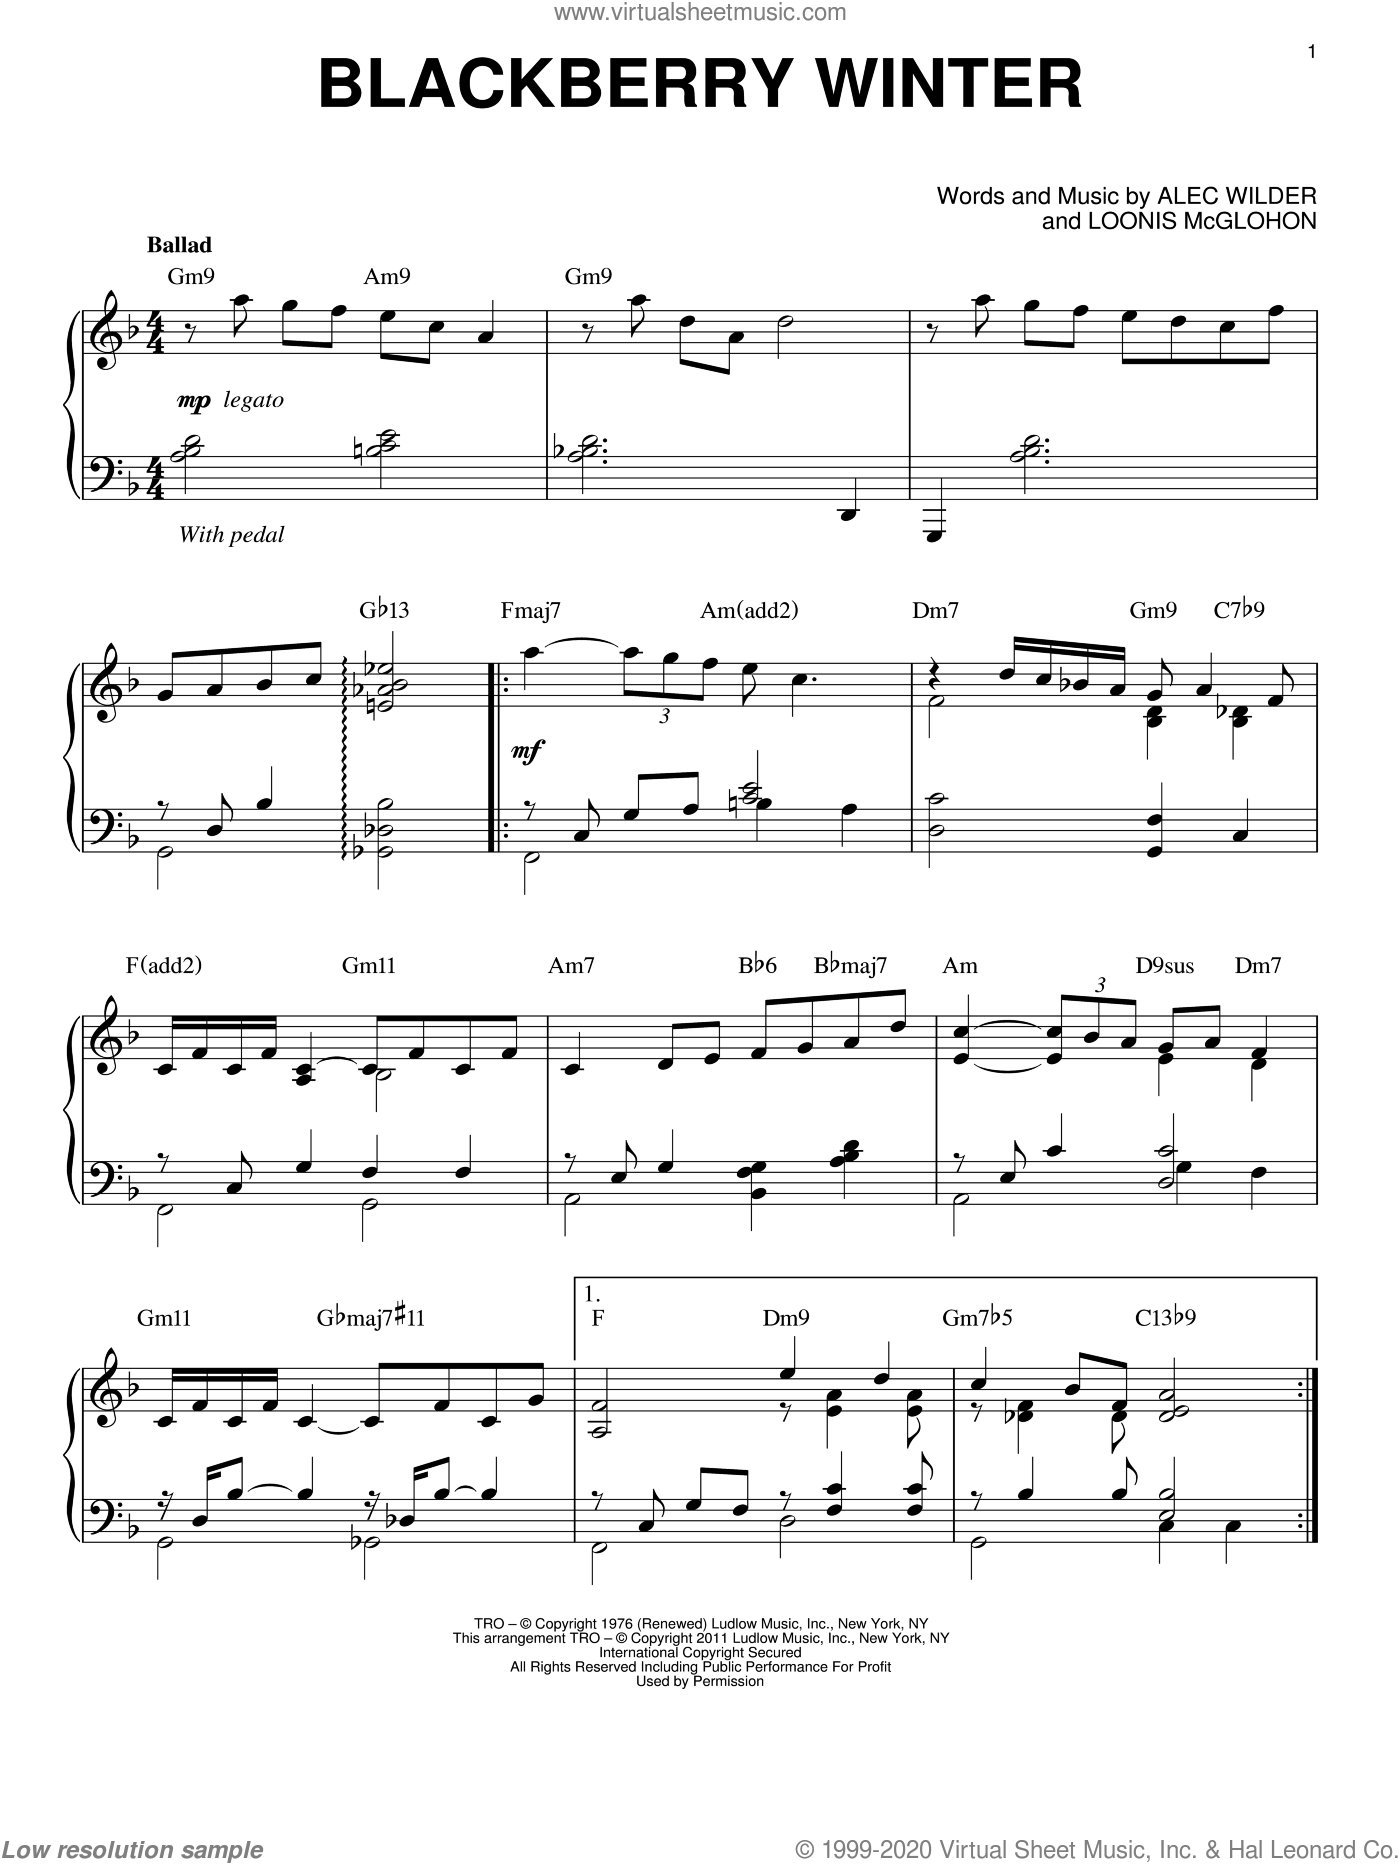 Blackberry Winter sheet music for piano solo by Loonis McGlohon